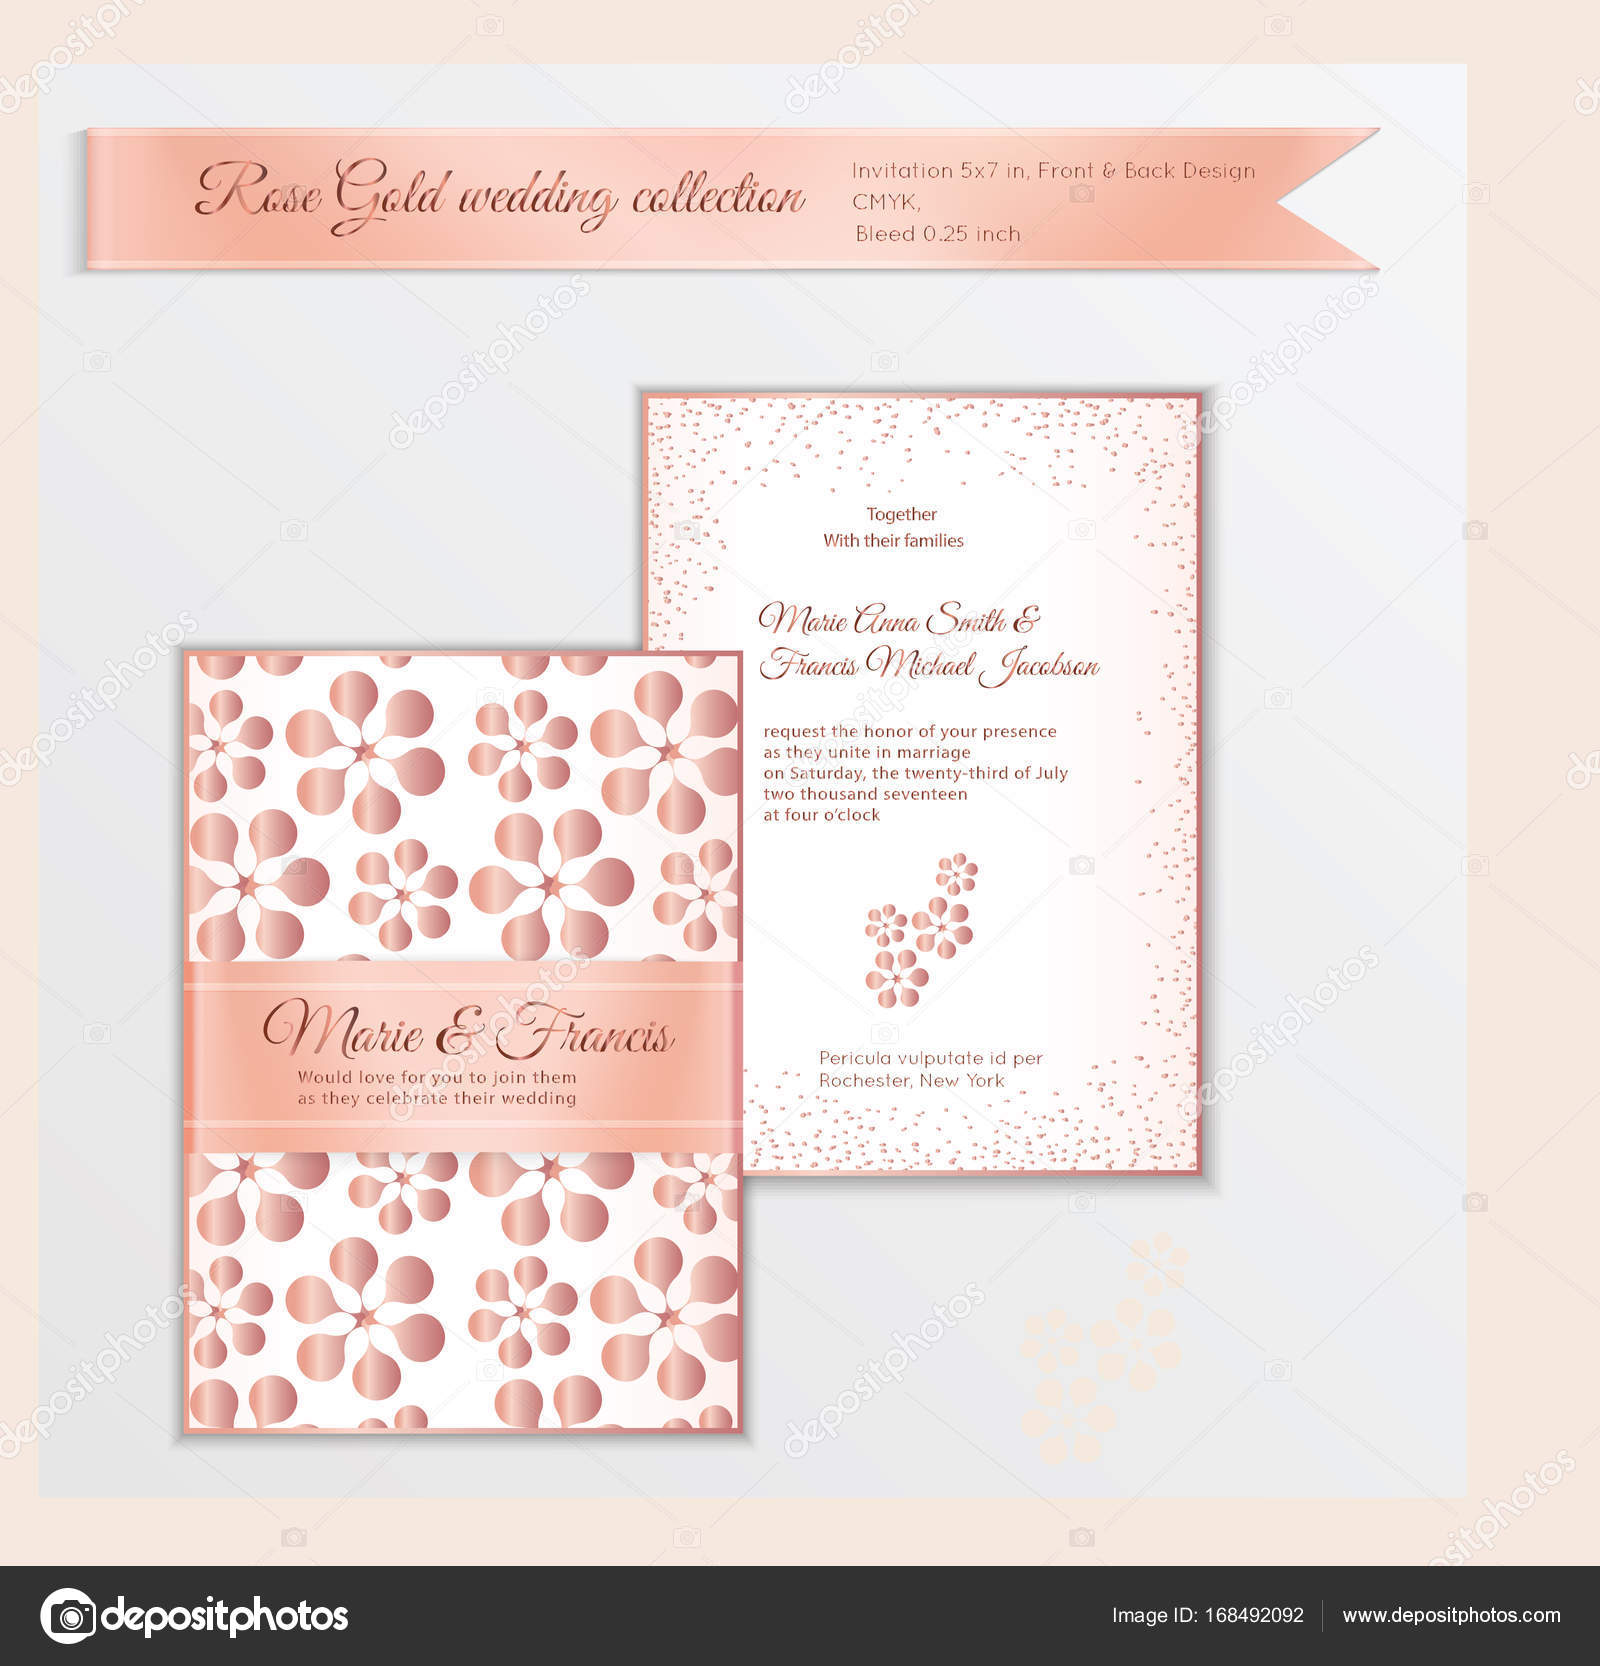 luxury wedding invitation template with rose gold shiny realisti